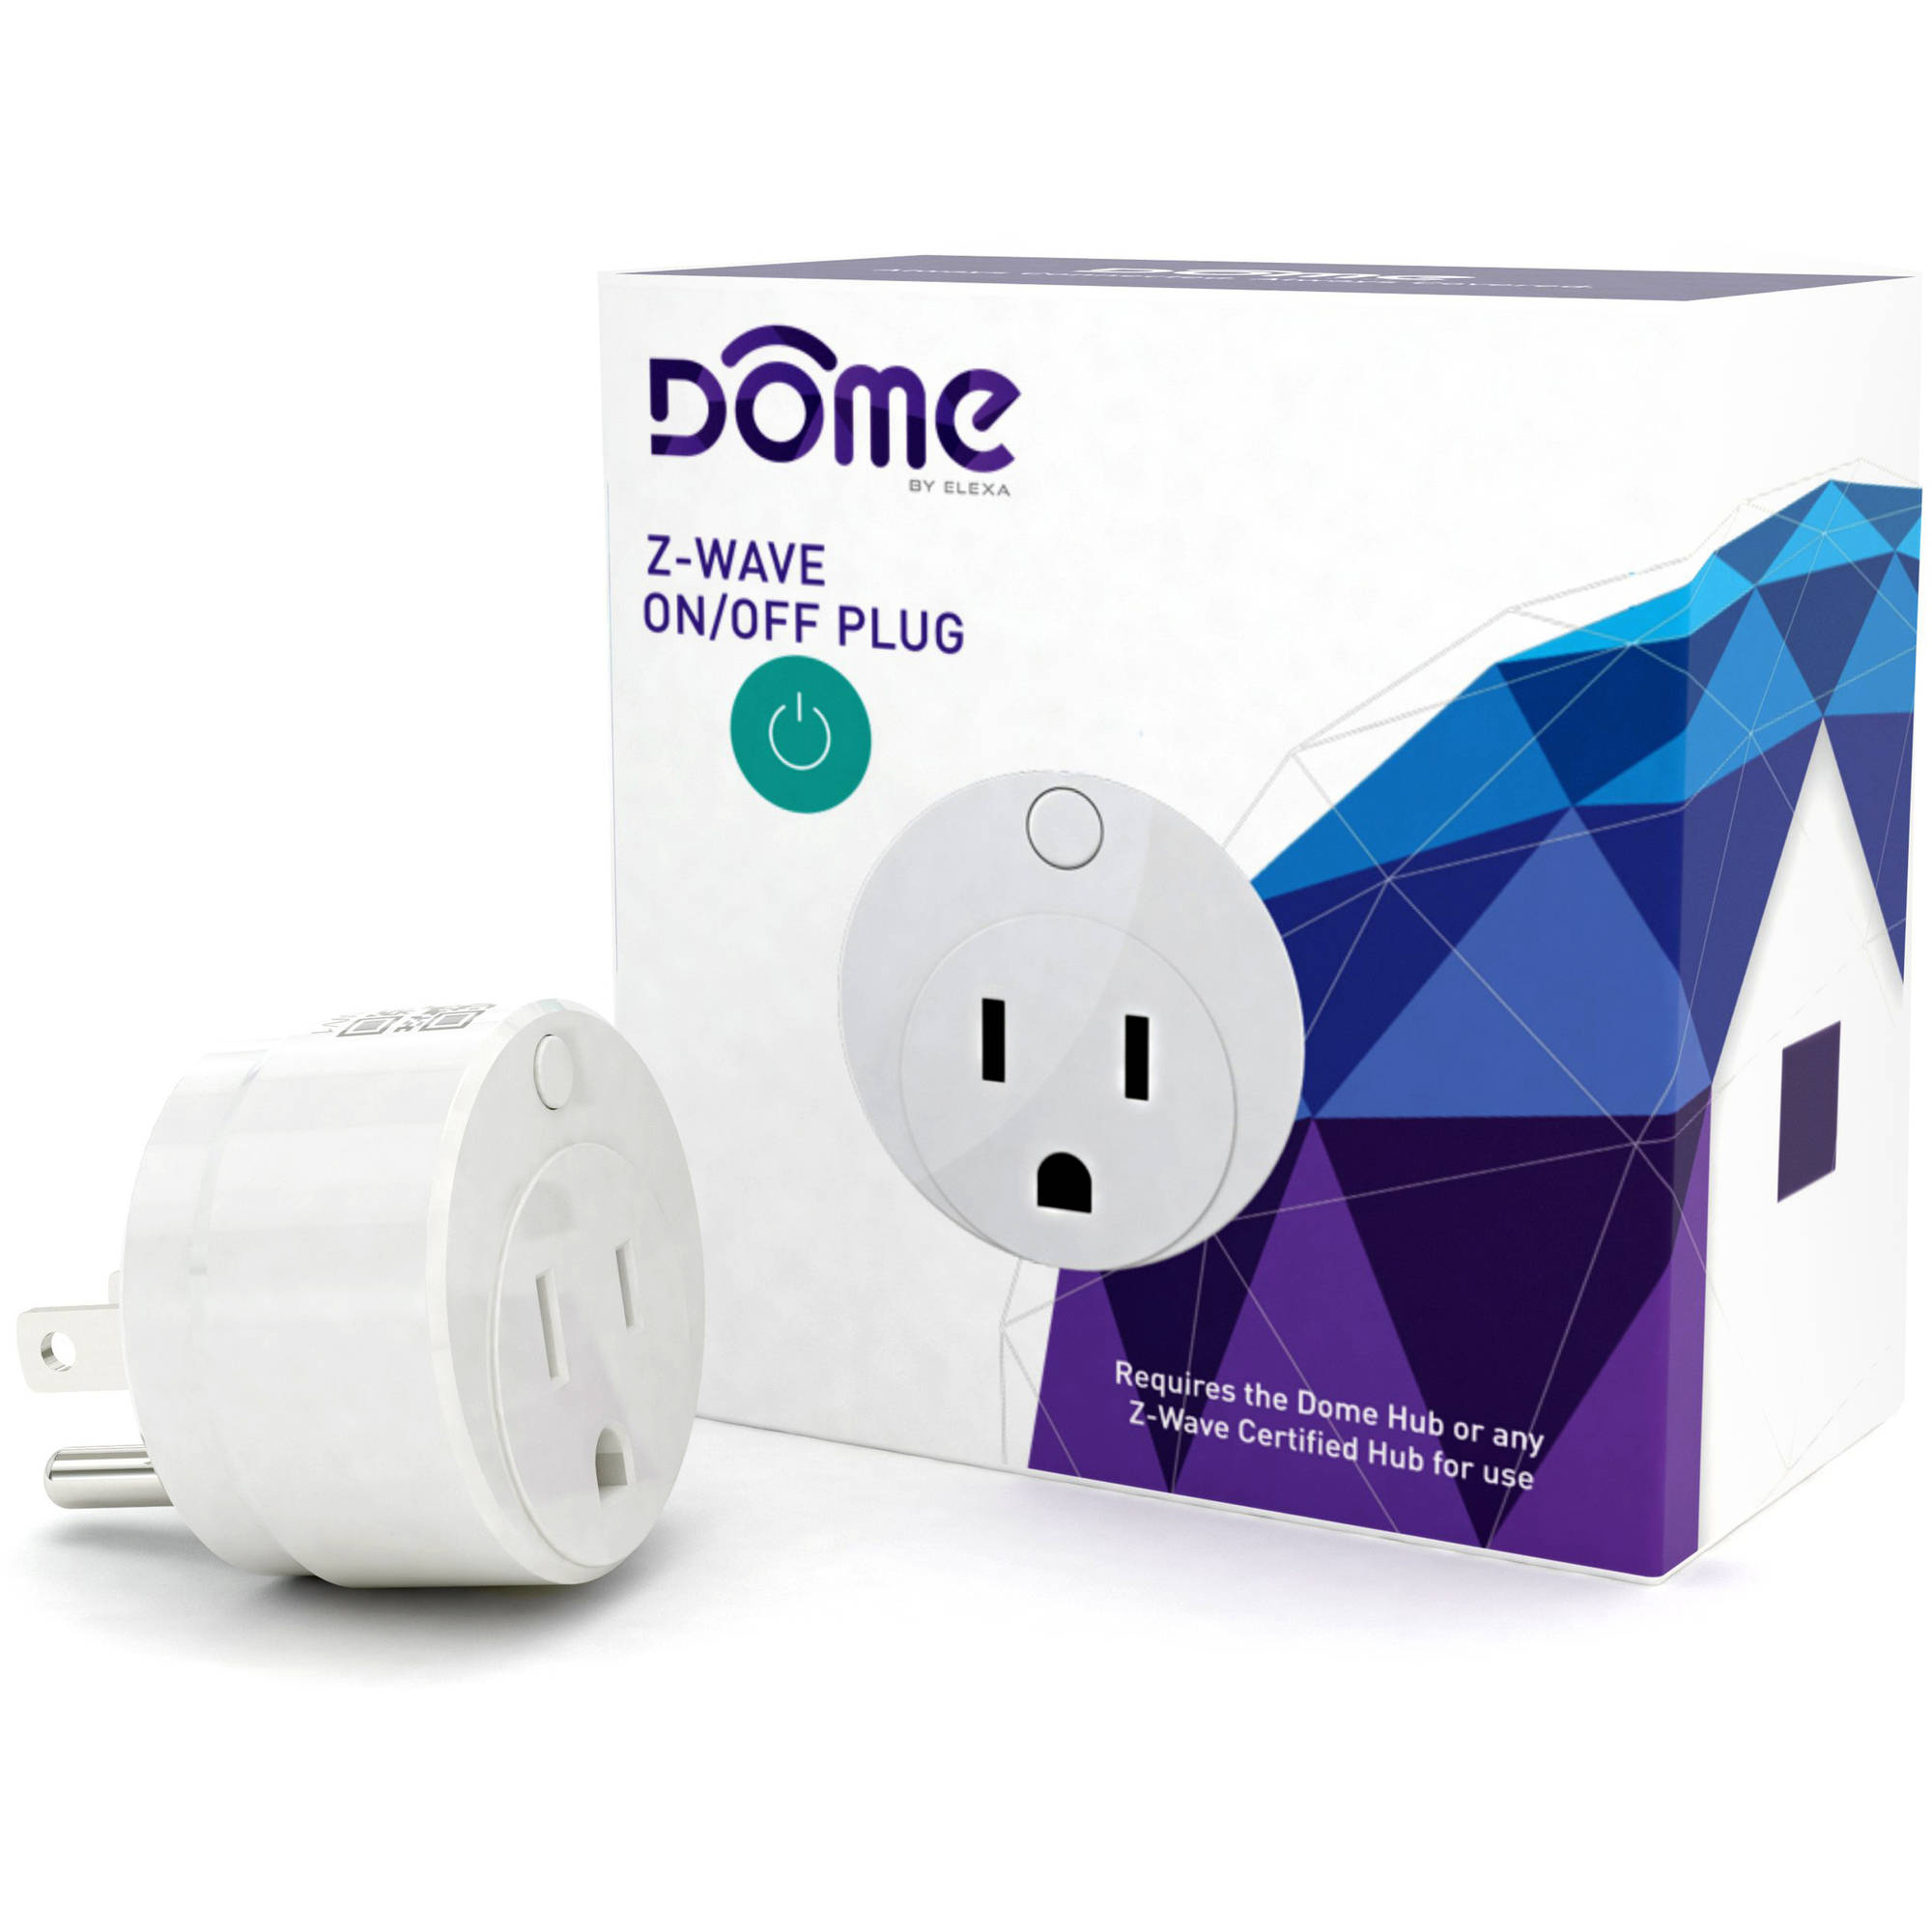 Dome DMOF1 Indoor Smart Plug (1 Outlet), Hub Required